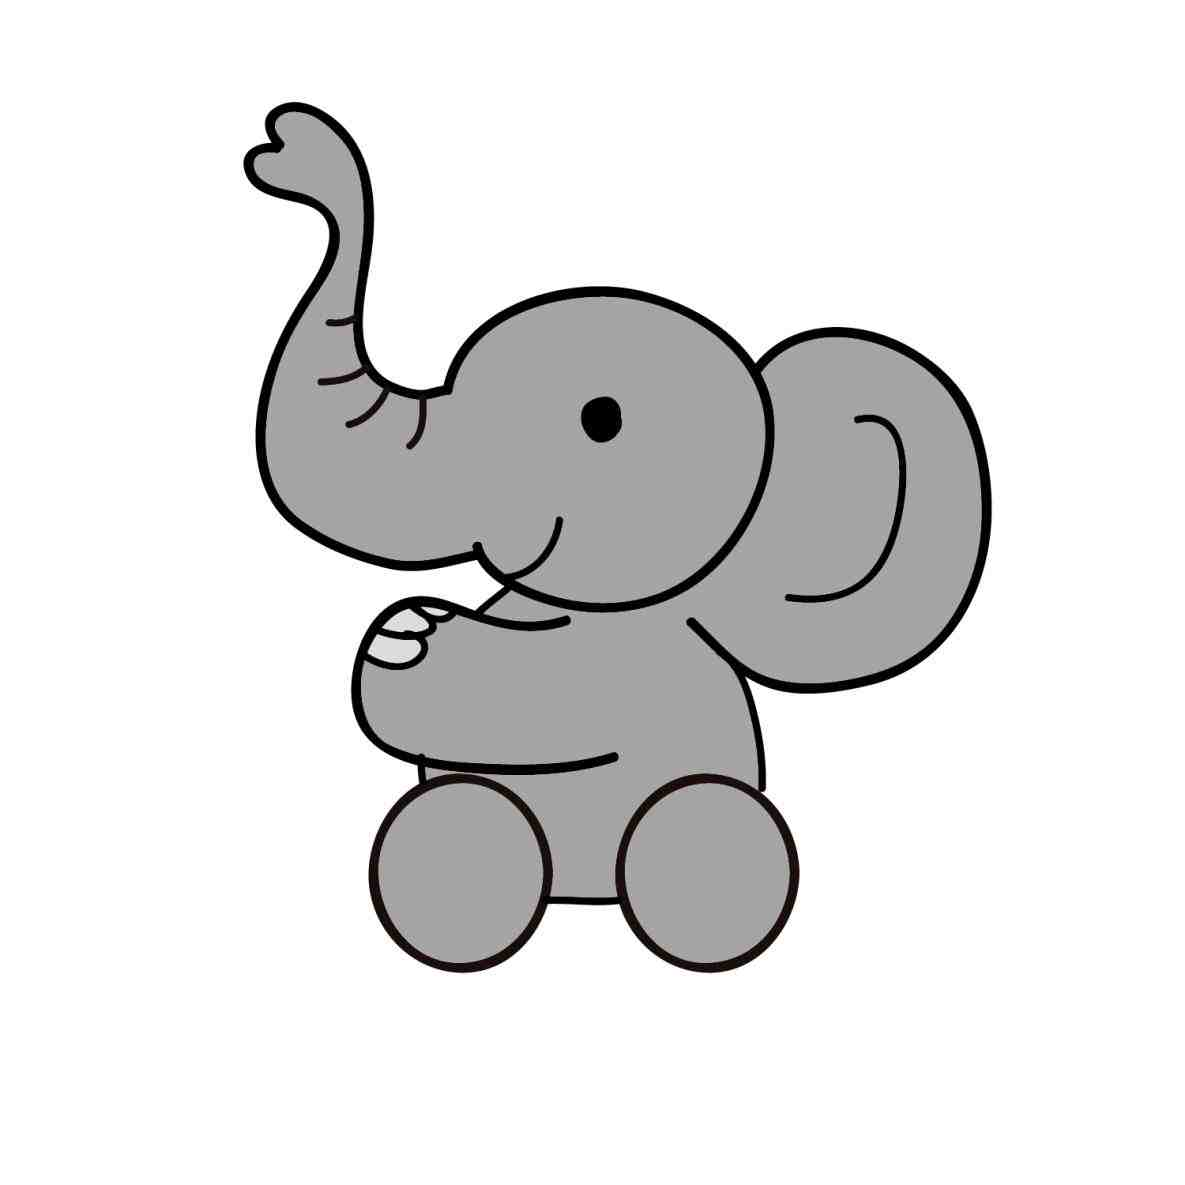 1185x1185 Cute Drawings Of Baby Elephants